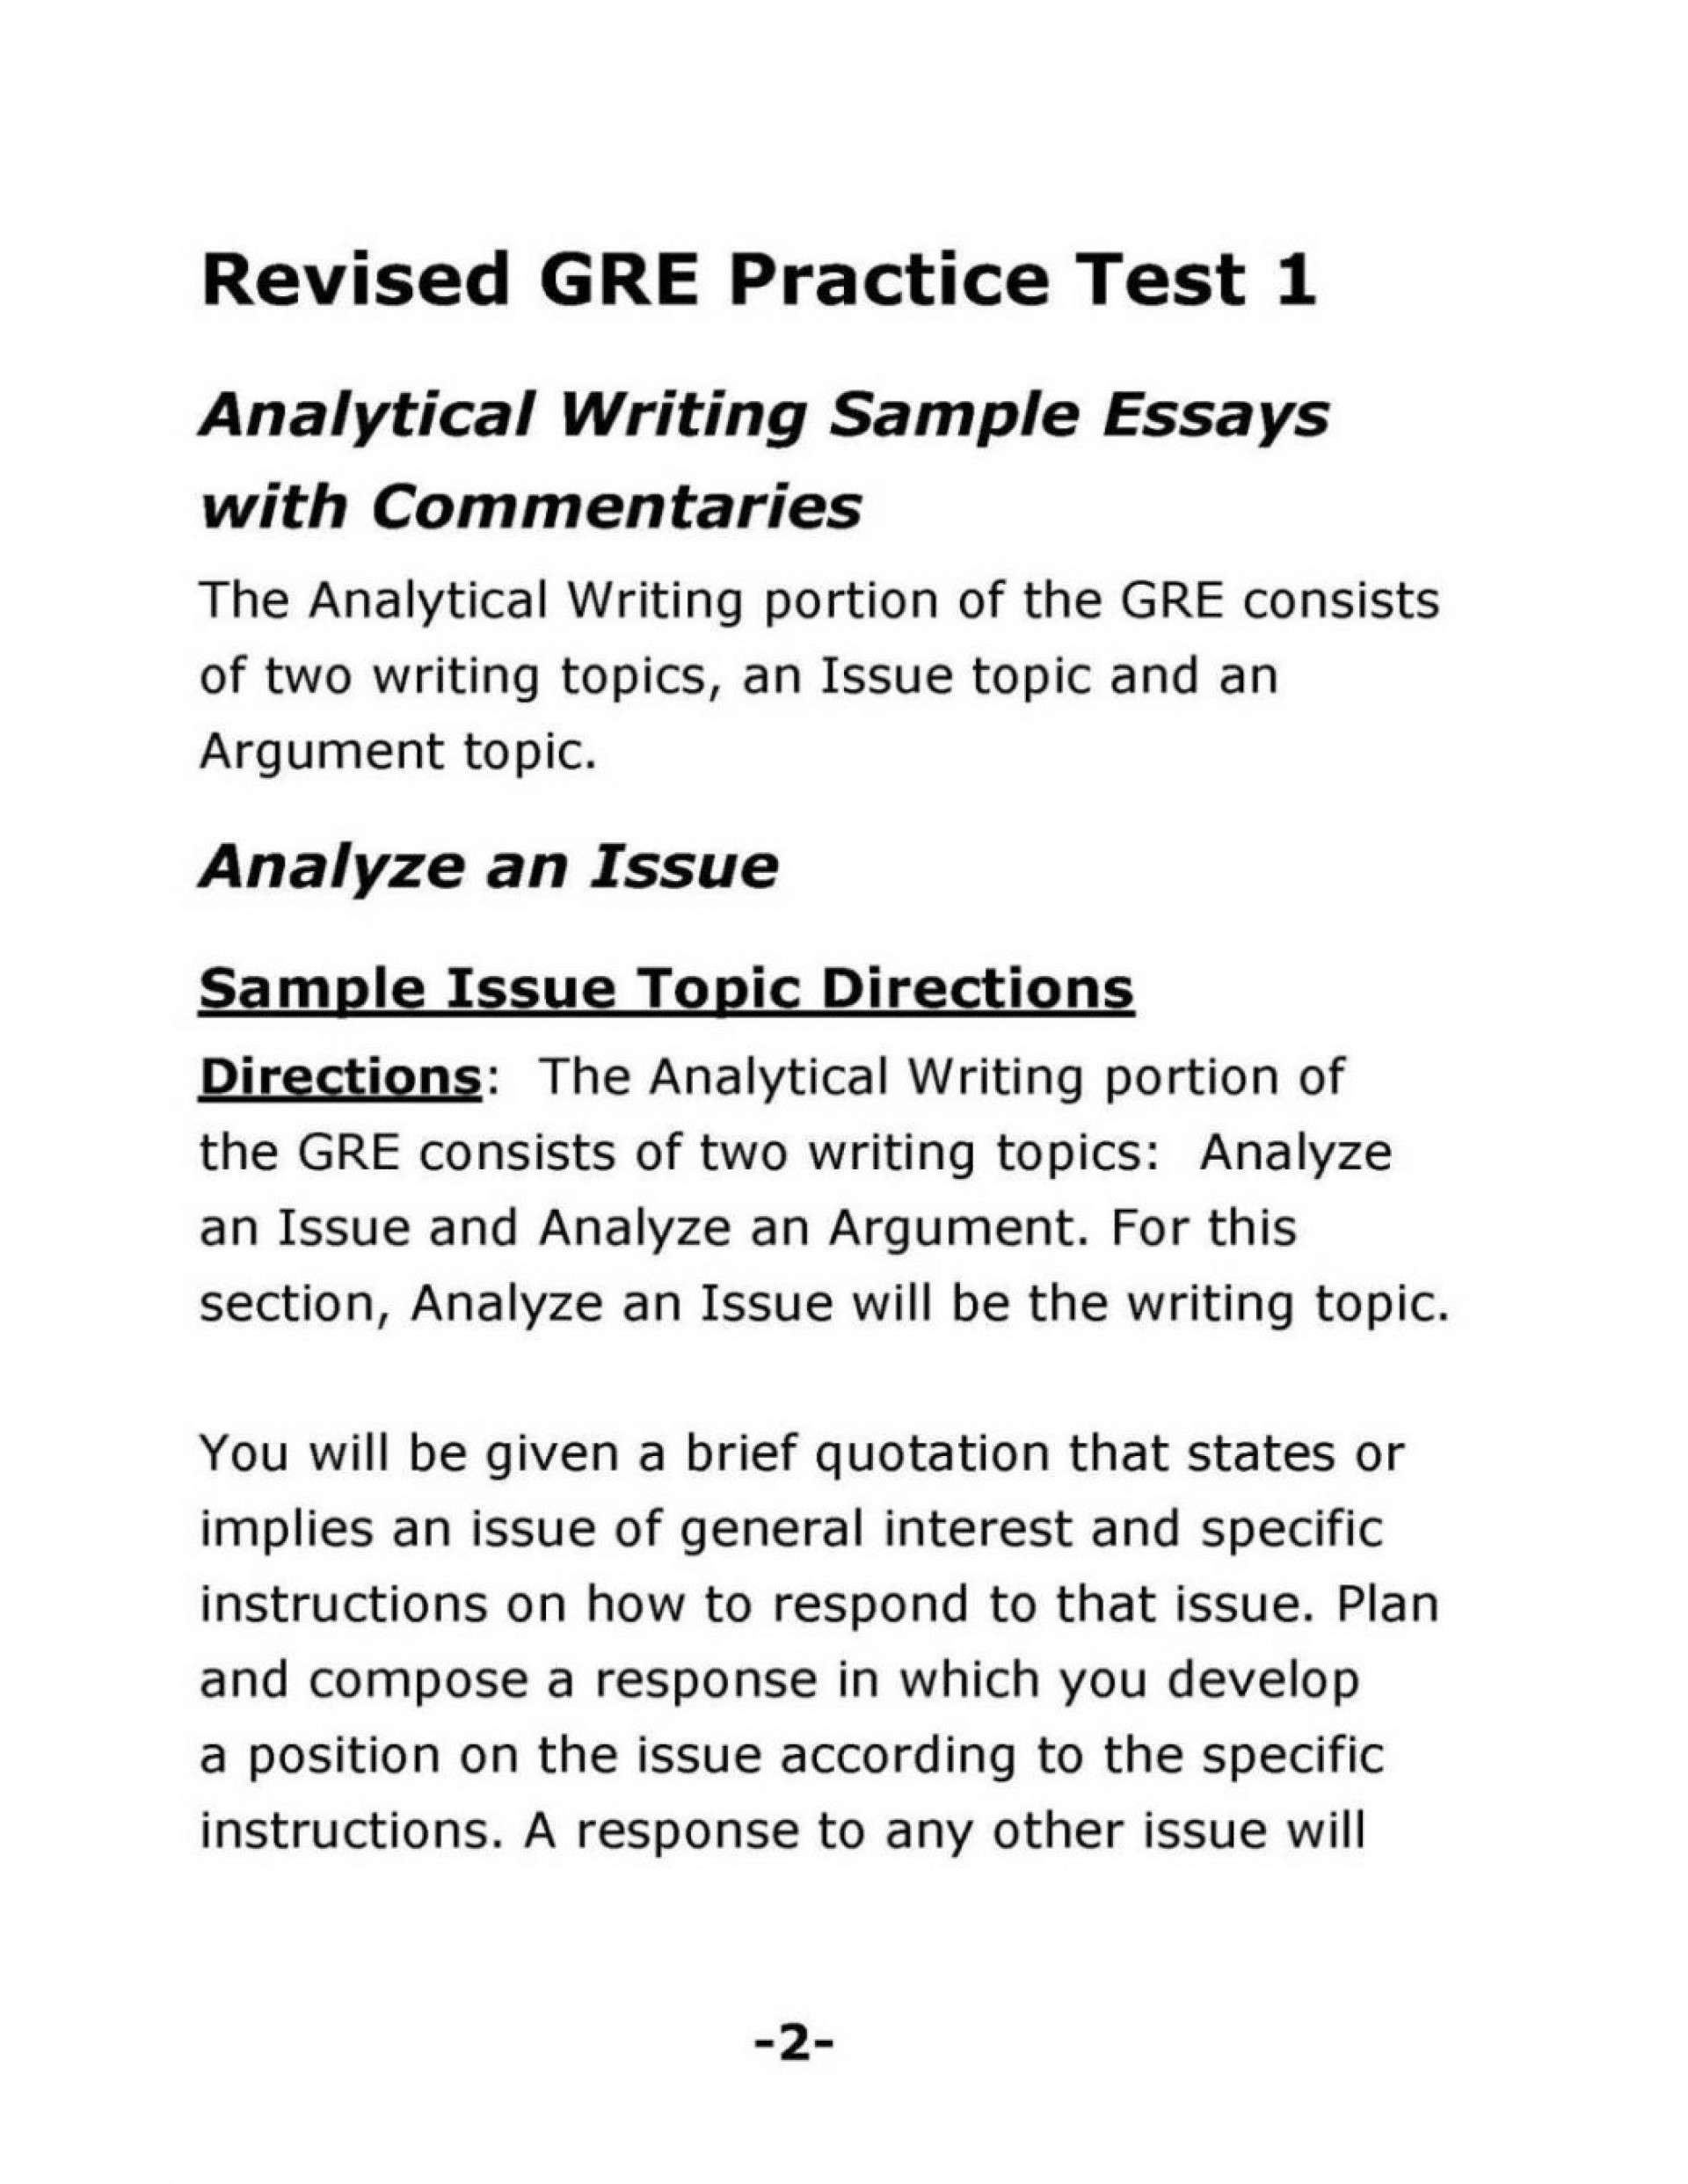 009 Argumentative Analysis Essay Topics Good Persuasive For Gre Arguments Sample Test Papers With Soluti Tips Pdf 1048x1356 Unusual Argument Examples Questions Analytical Writing Samples 1920